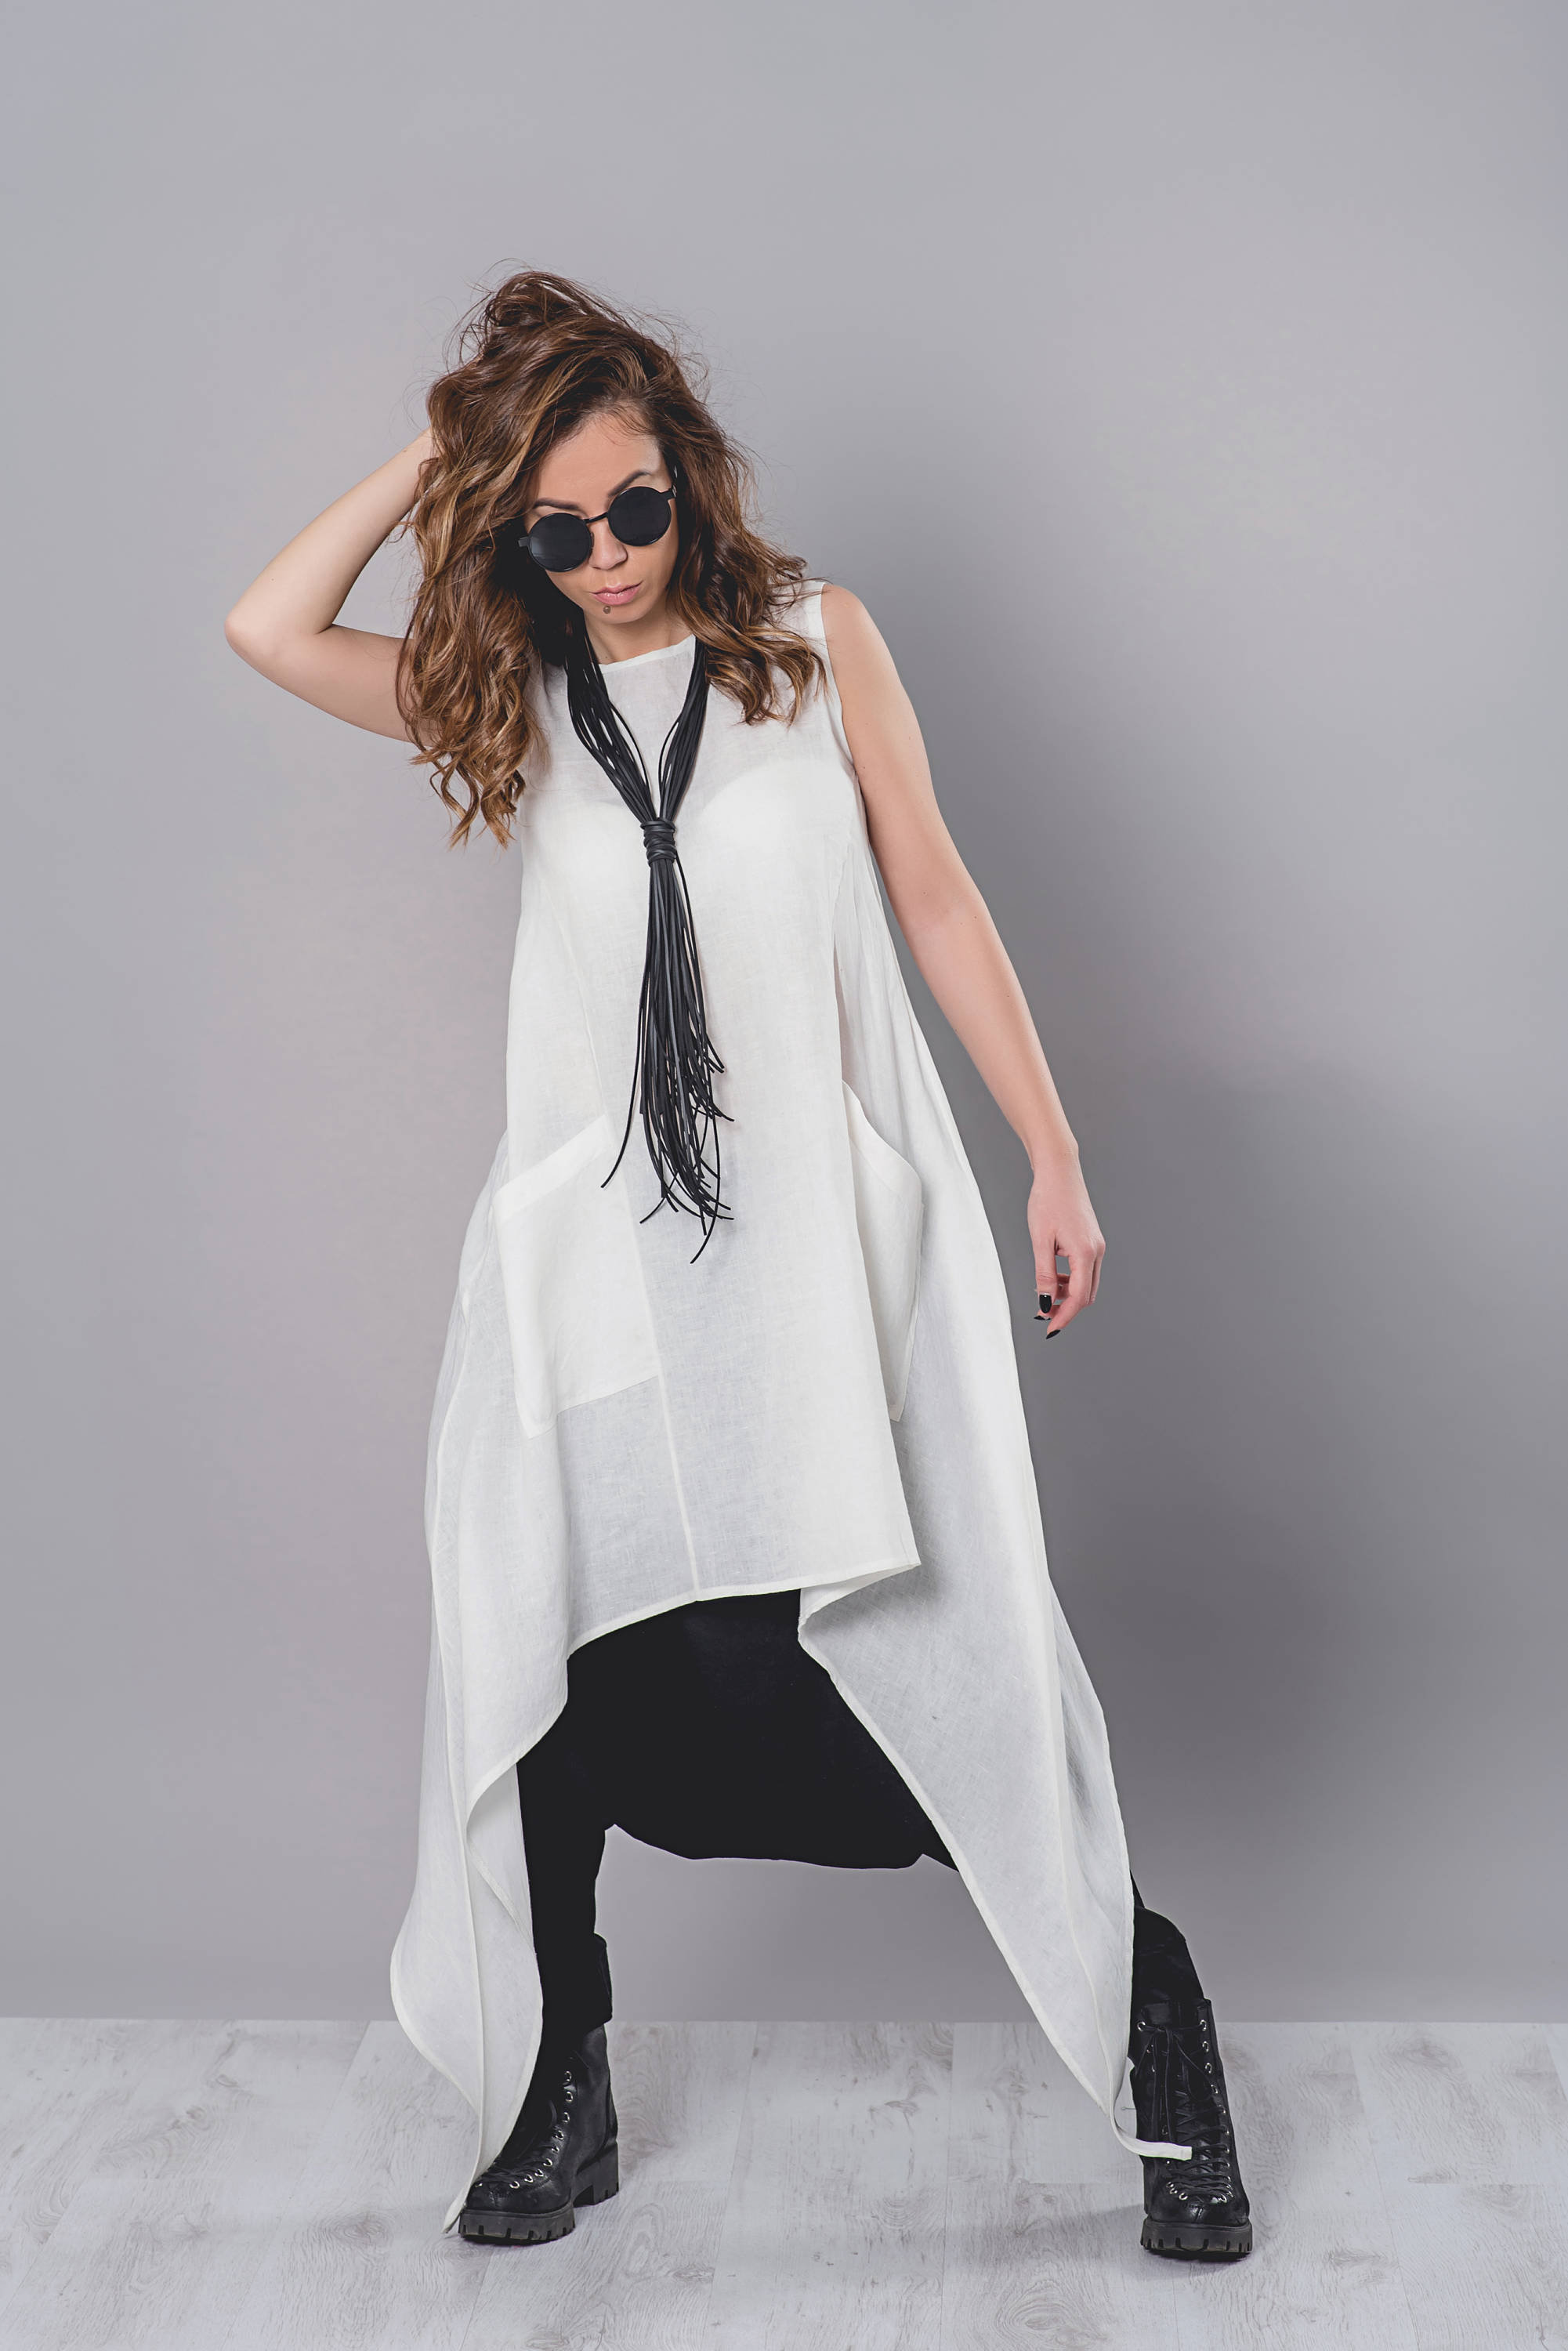 Linen Tunic, Asymmetric Tunic, Linen Clothing, Linen Top, Plus Size Tunic, White Tunic, Maxi Tunic, Women Top, Summer Top, Extravagant